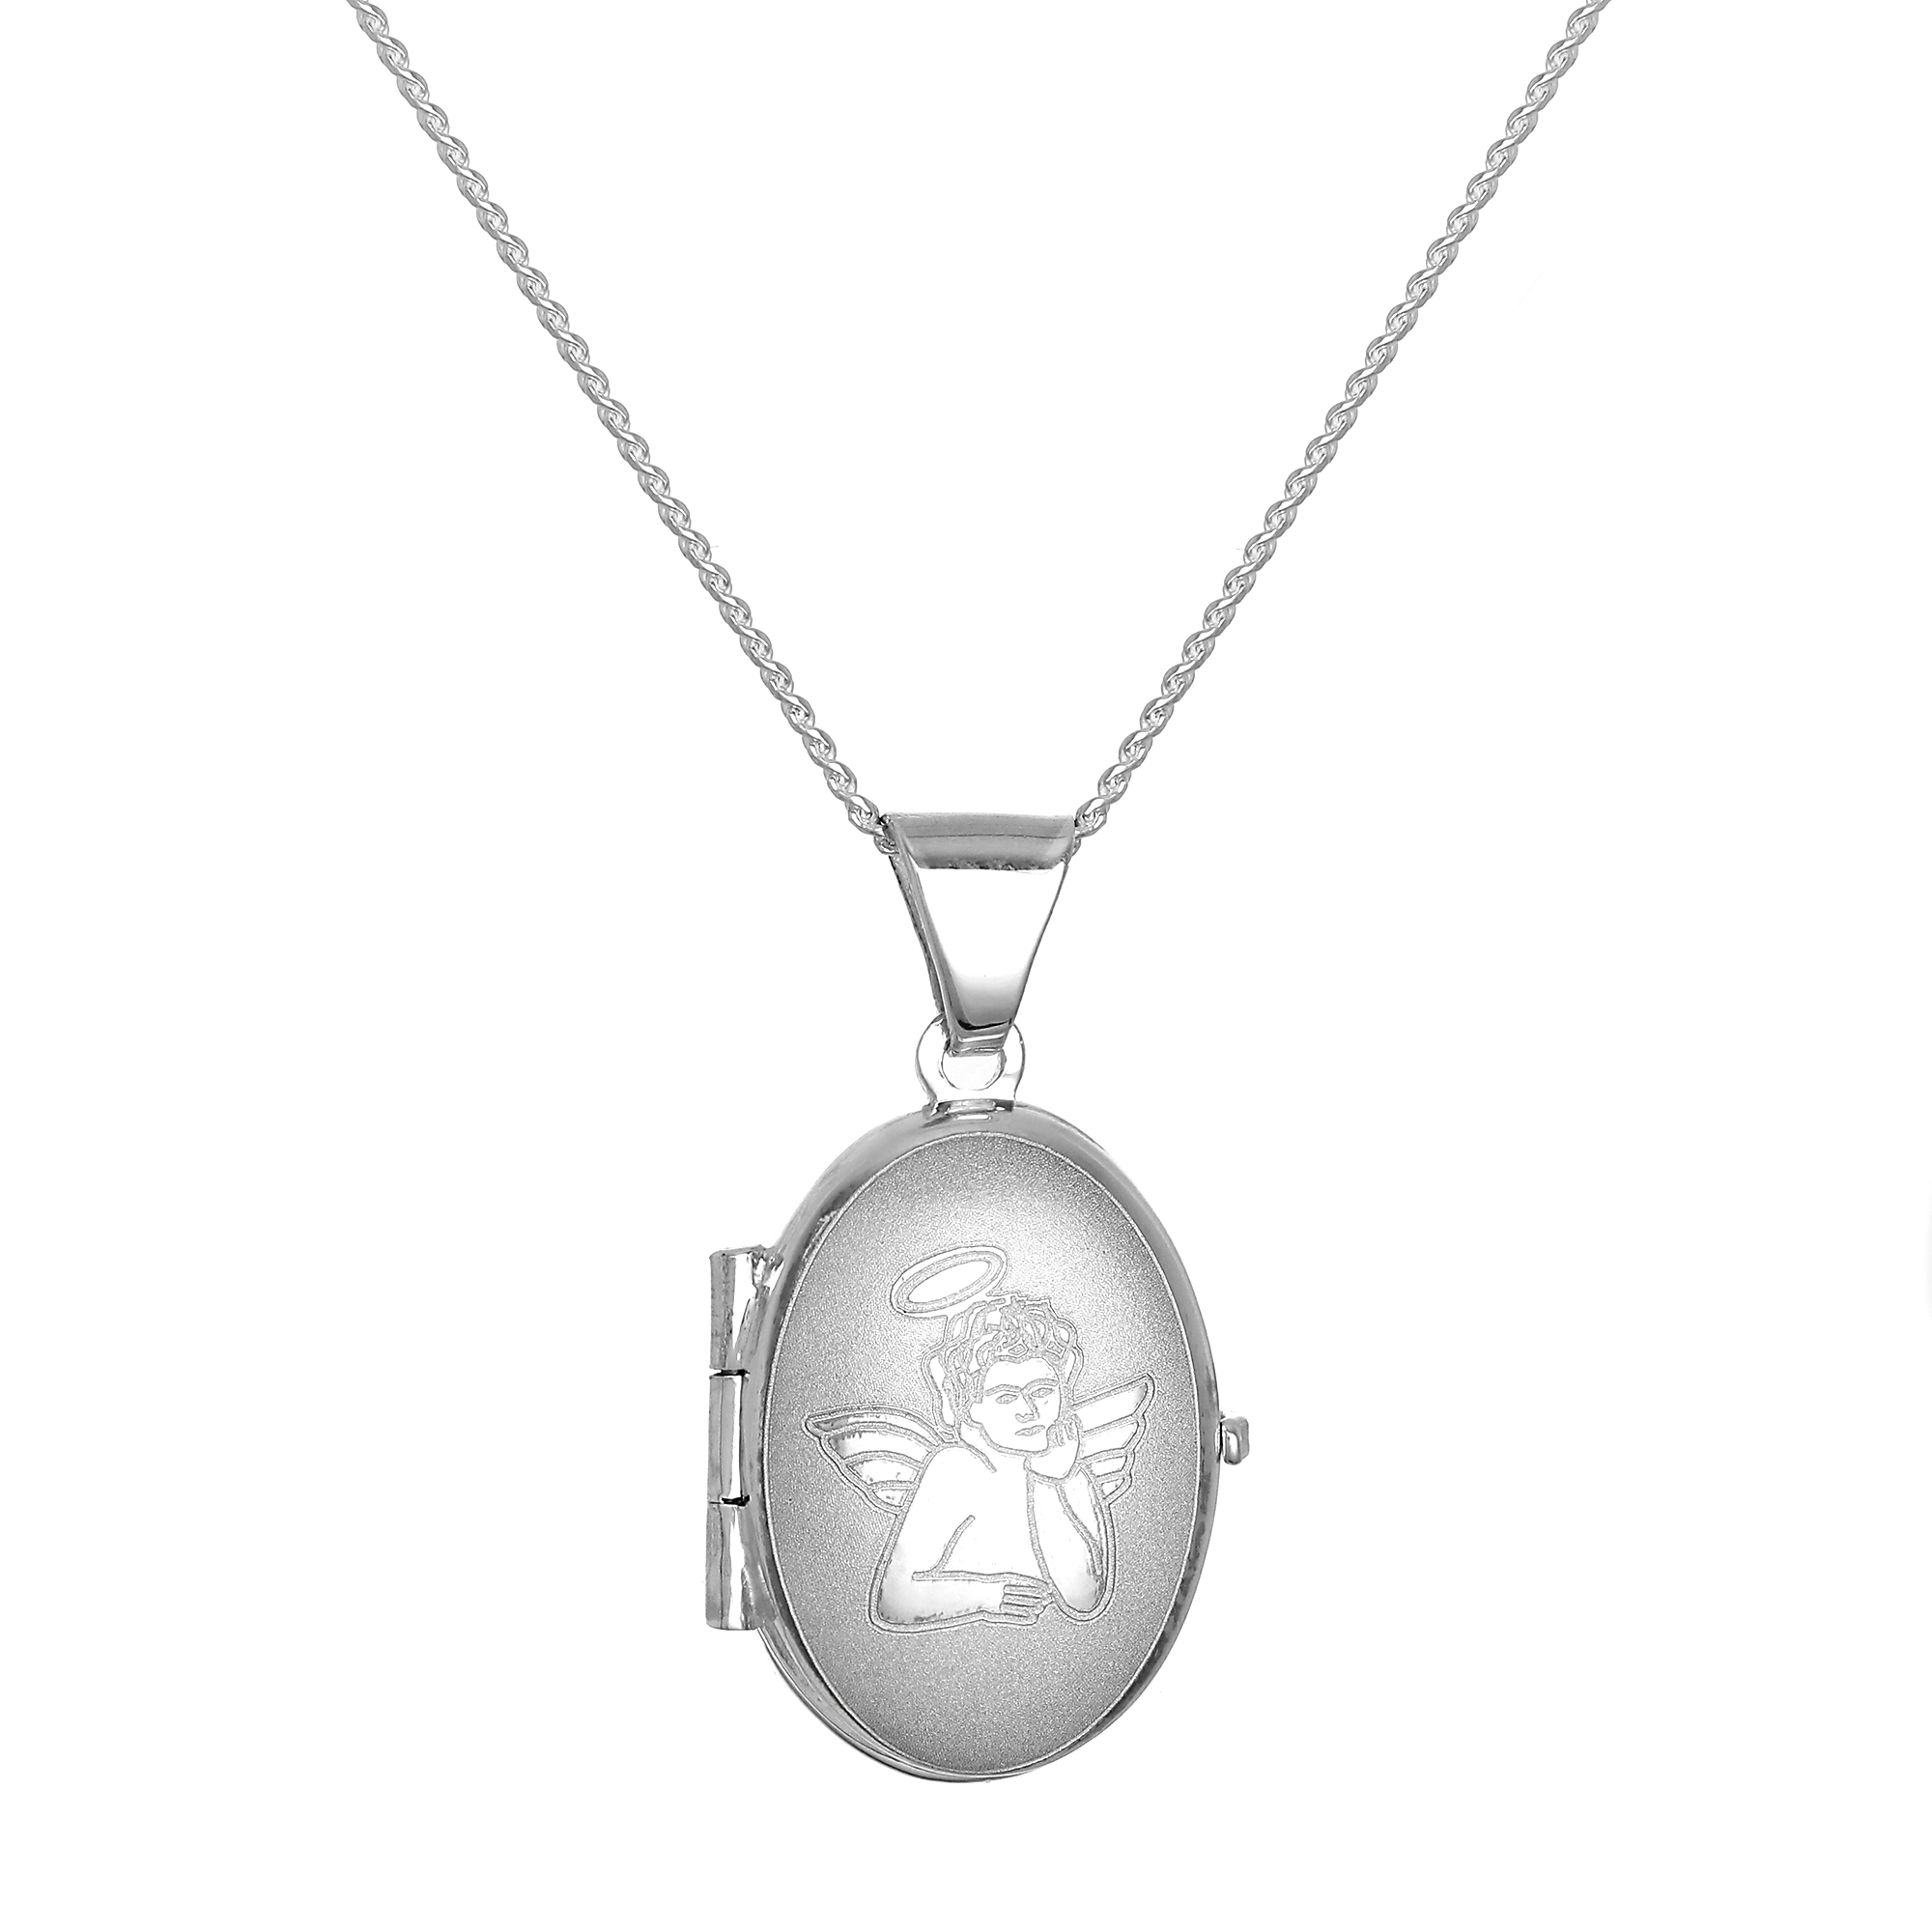 An image of Small Matt Sterling Silver Oval Locket with Angel on Chain